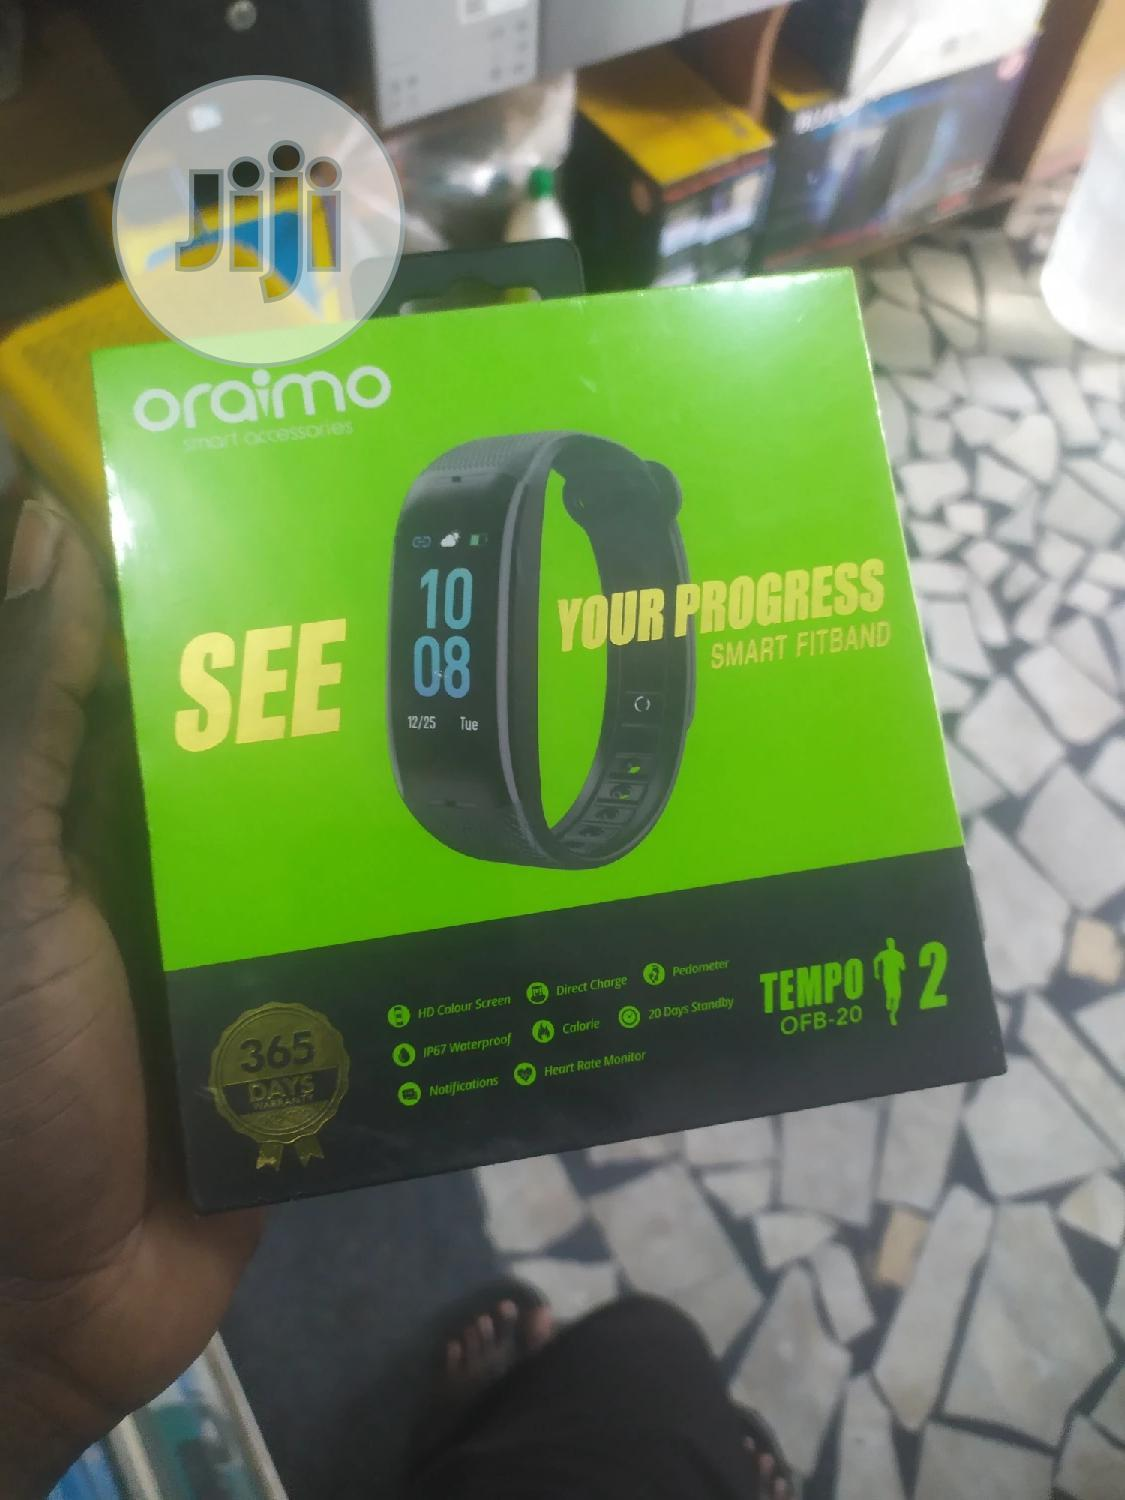 Oraimo Smart Fitband OFB-20